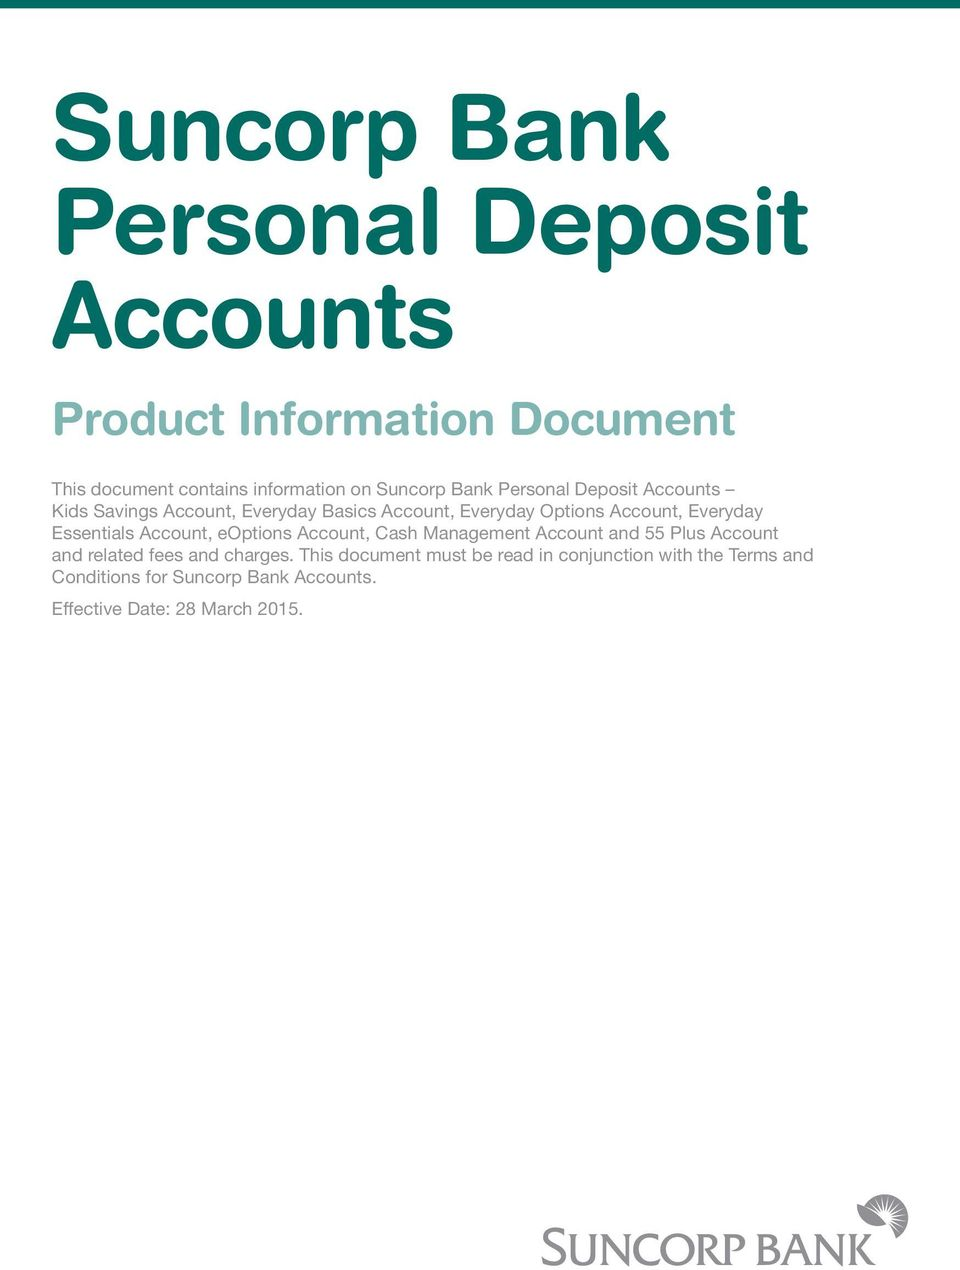 Essentials Account, eoptions Account, Cash Management Account and 55 Plus Account and related fees and charges.